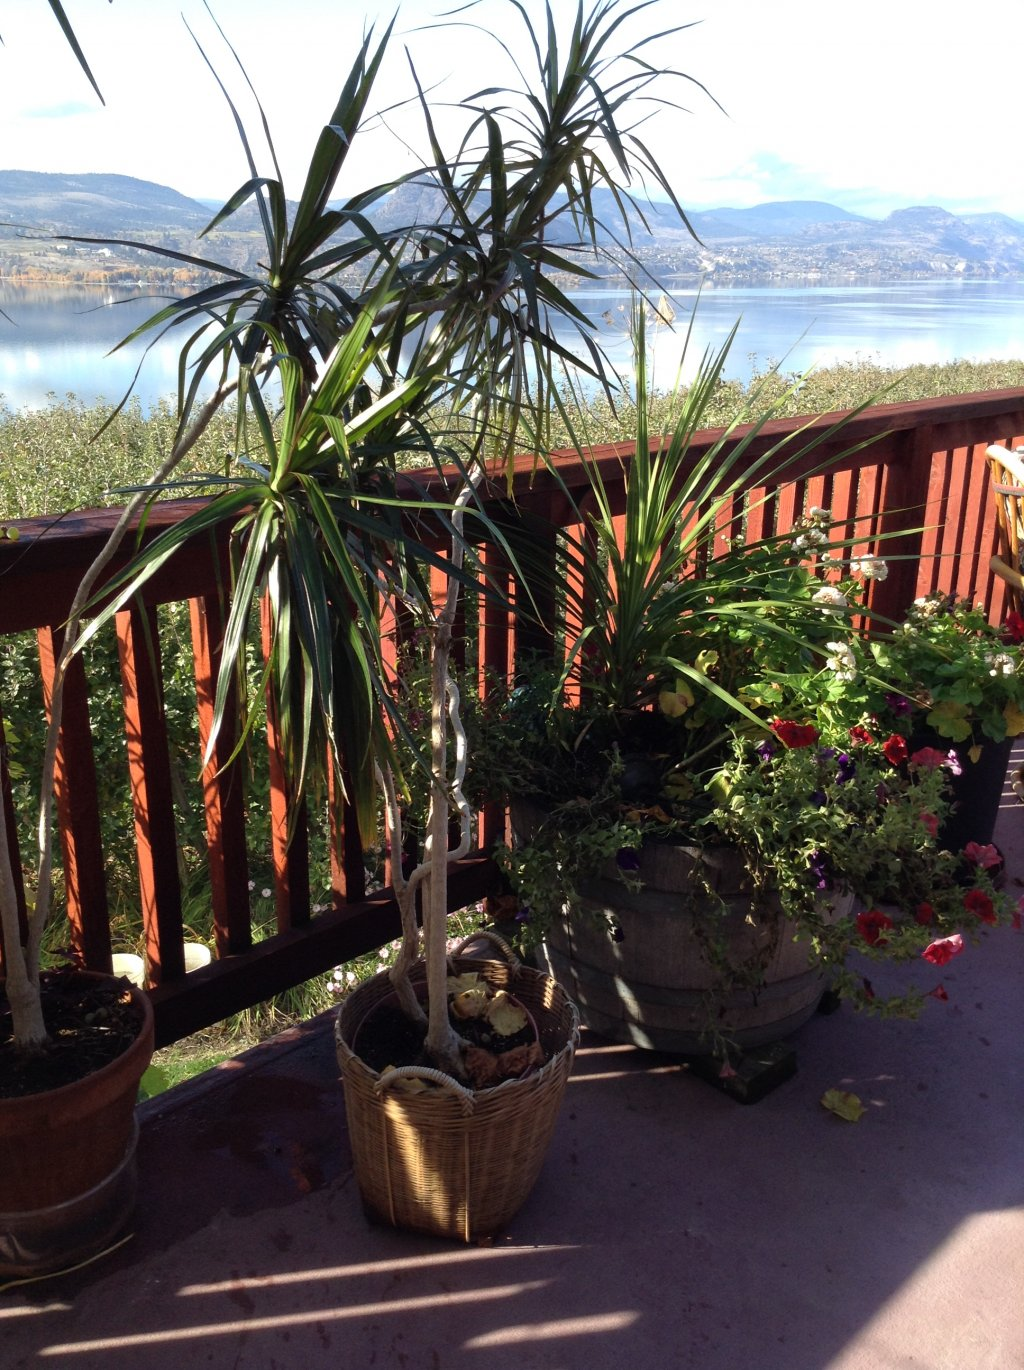 House Plant For Sale In Penticton Bc 【 Skaha Ca